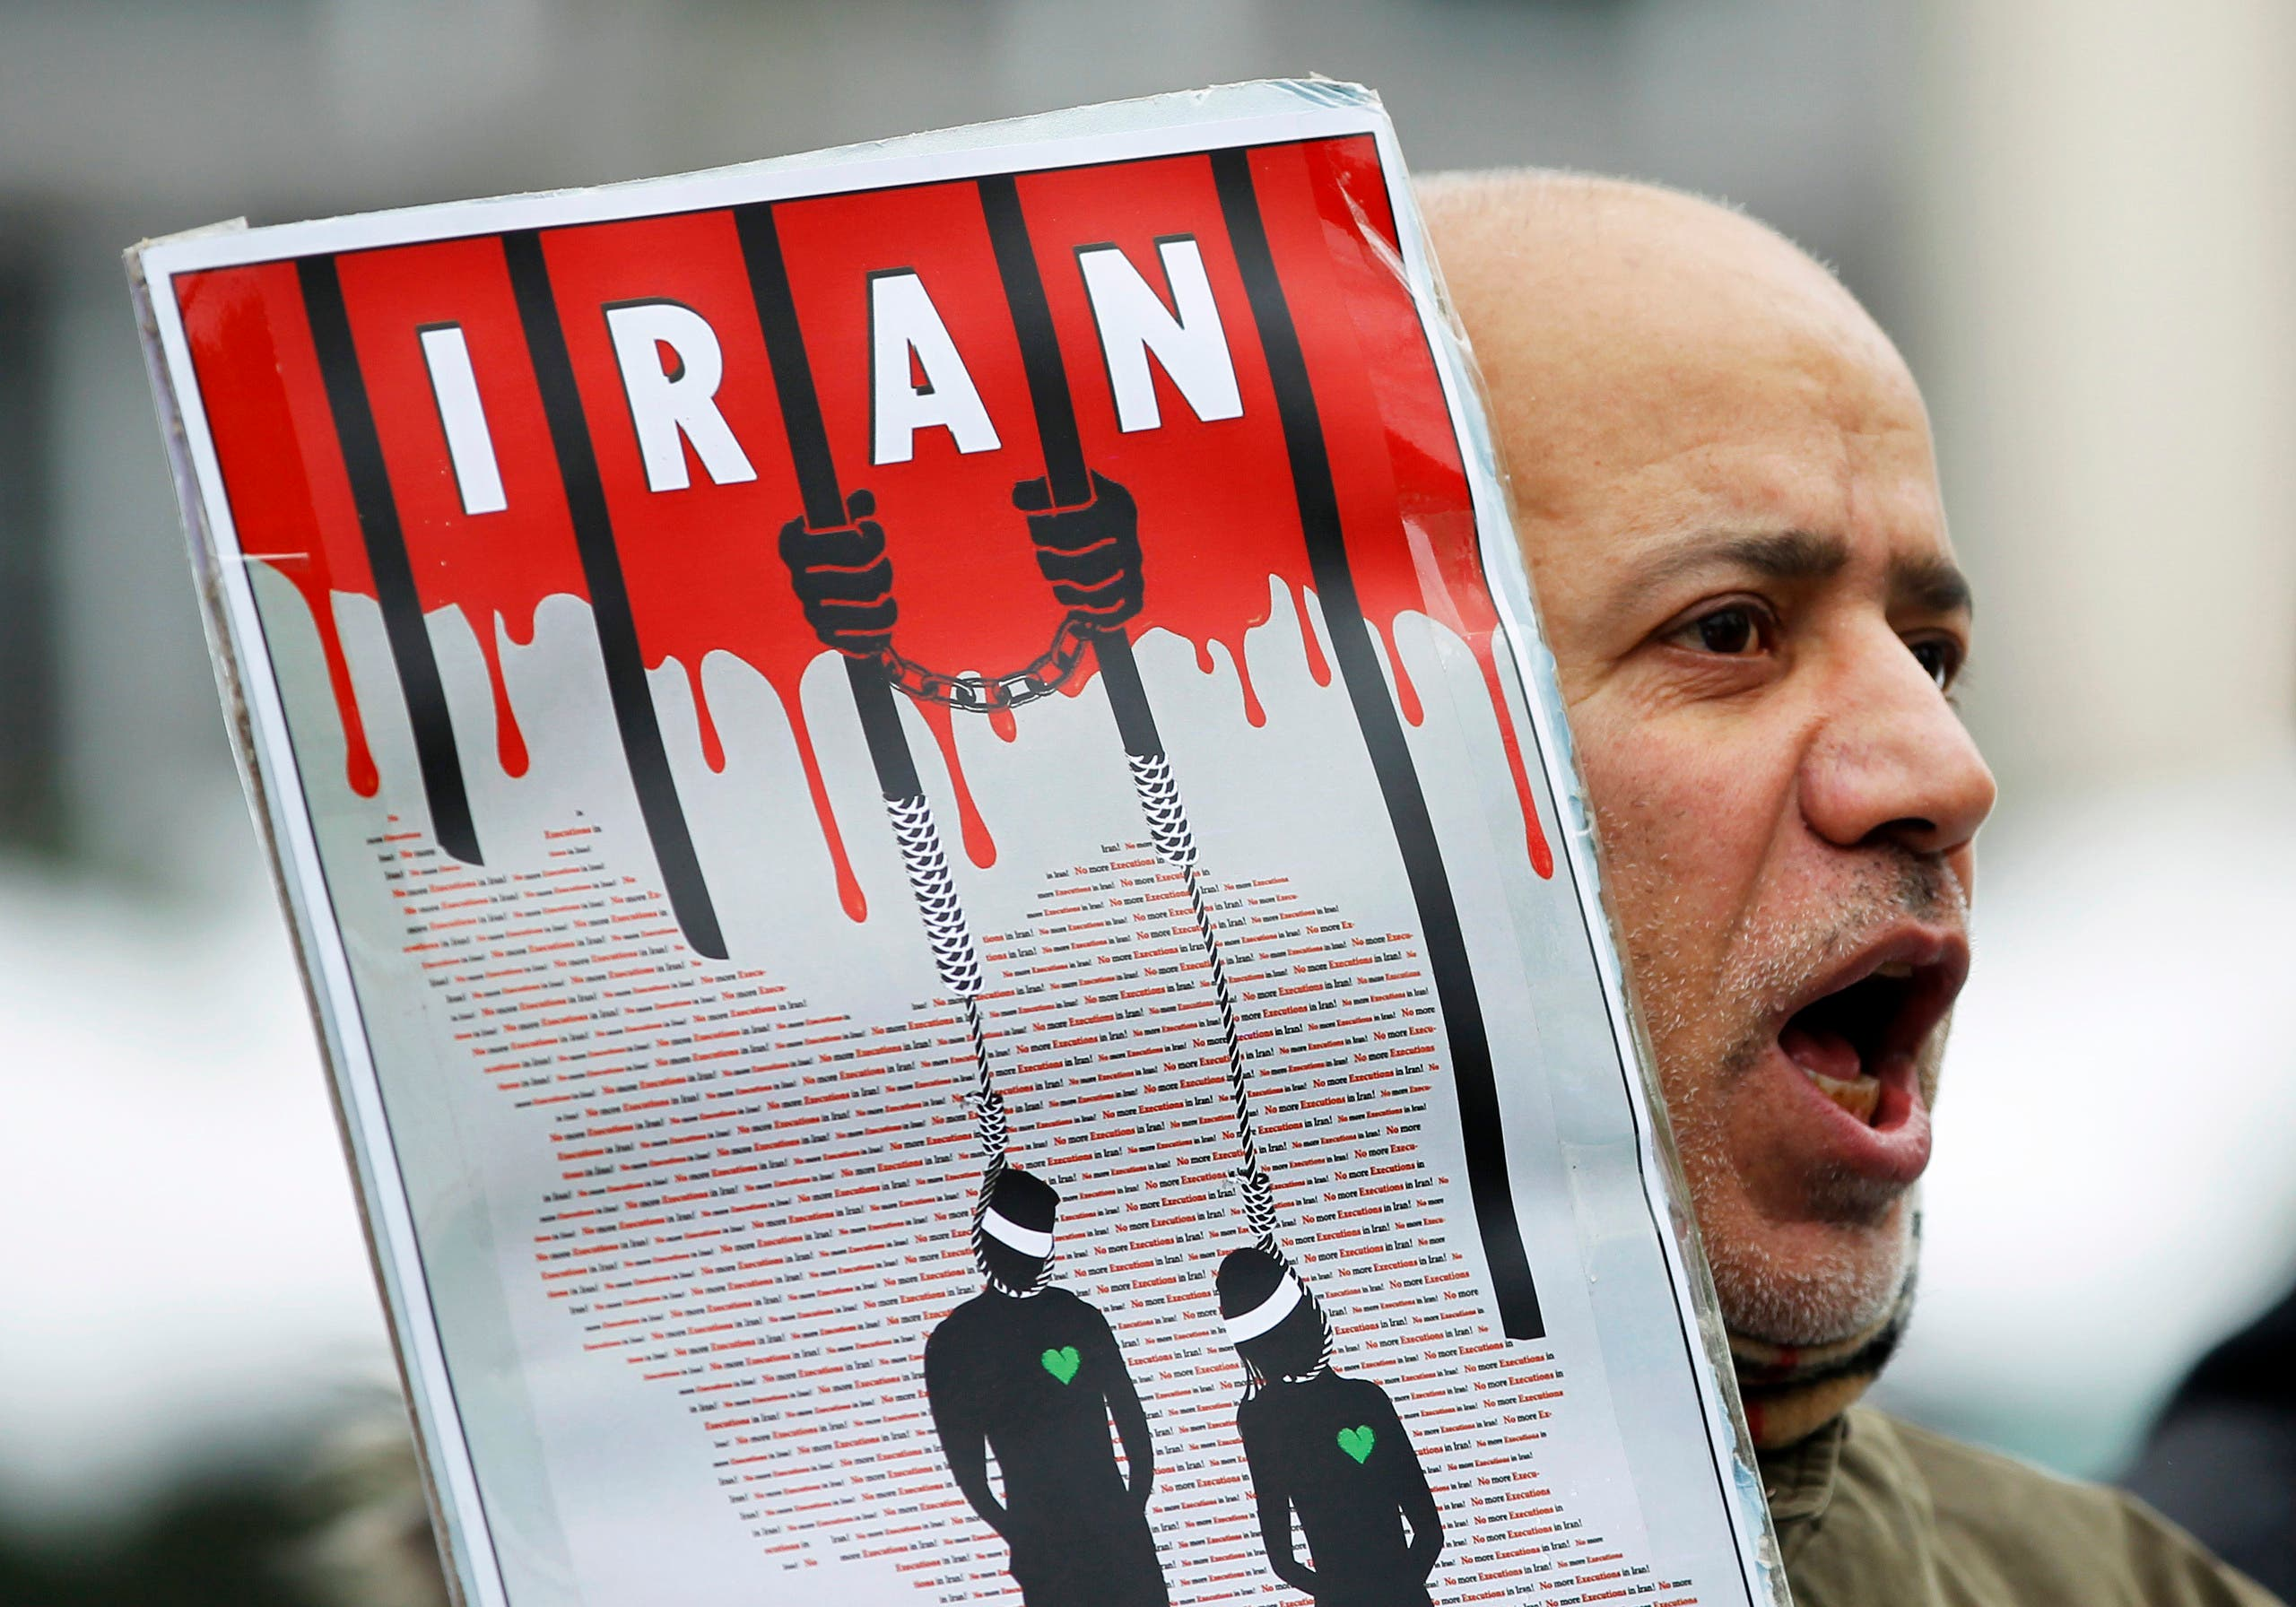 An Iranian exile shouts slogans to protest against executions in Iran during a demonstration in front of the Iranian embassy in Brussels December 29, 2010. (Reuters)